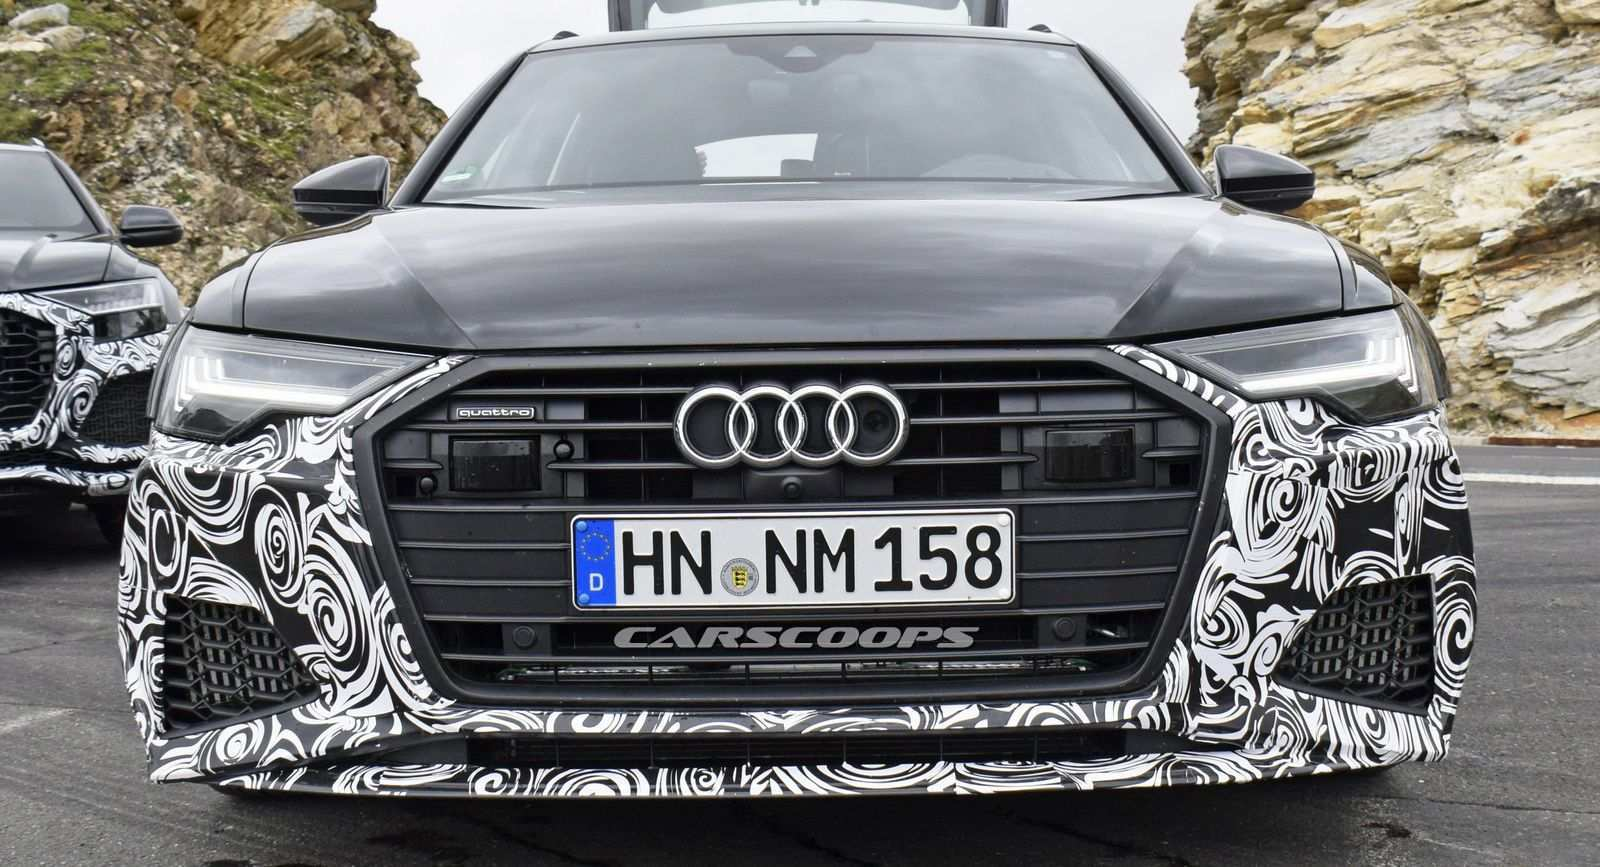 35 Best Review 2020 Audi Rs6 Avant Usa Concept with 2020 Audi Rs6 Avant Usa